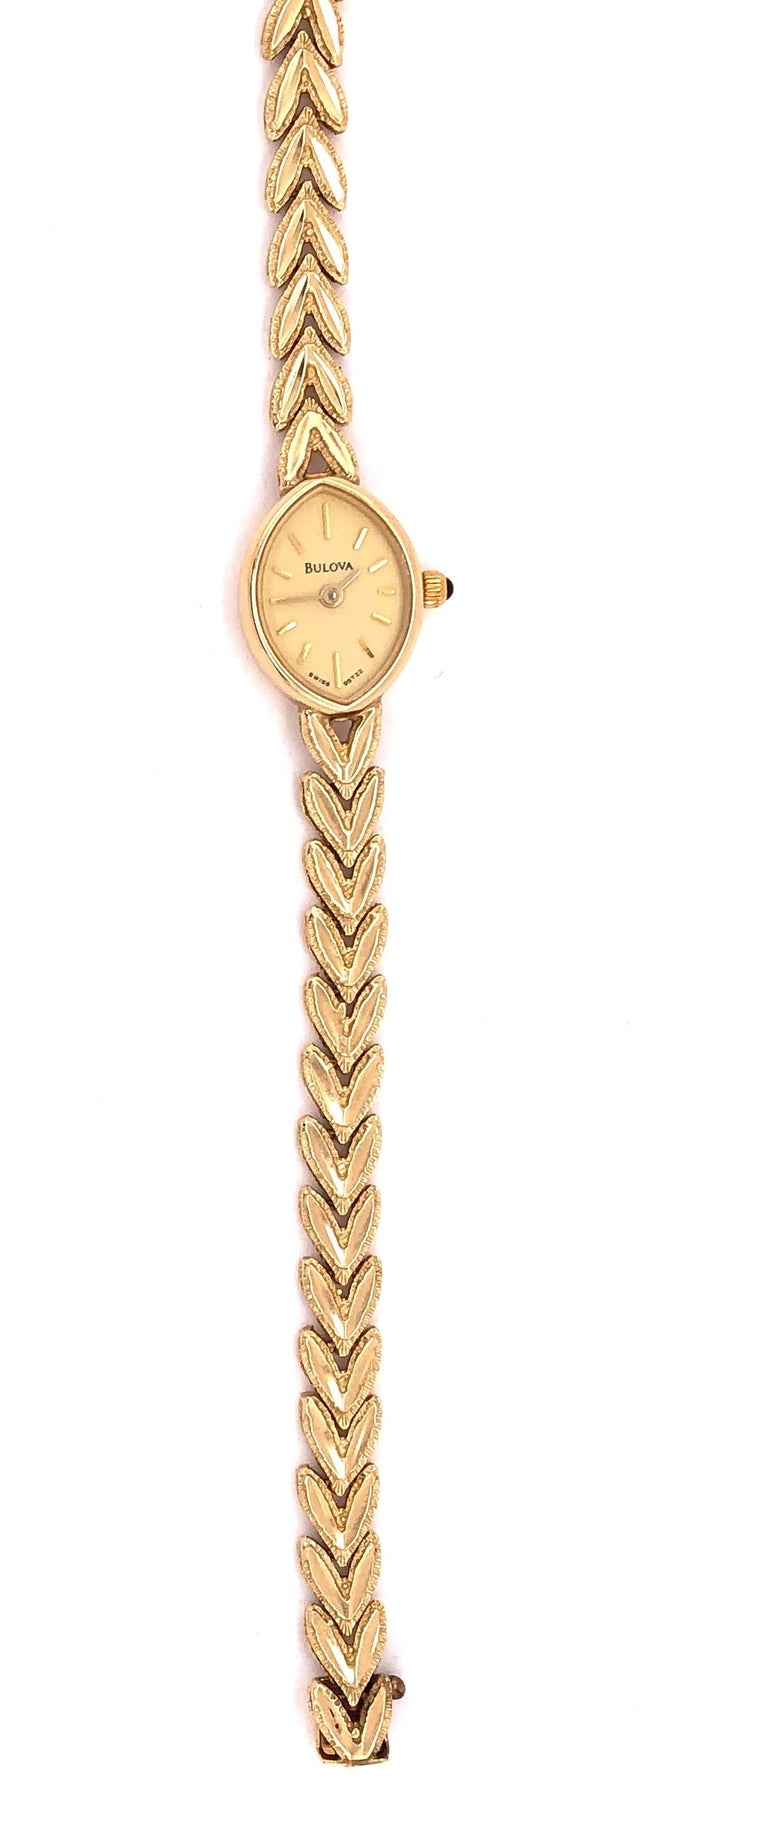 Vintage 14Kt Yellow Gold Bulova Wrist Watch Quartz Ronda 4 Jewels 15.7grams Without works. 17.5 Inches Bulova was founded and incorporated as the J. Bulova Company in 1875 by Bohemian immigrant Joseph Bulova (b. Joseph Bullowa, son of Nathan Bullowa